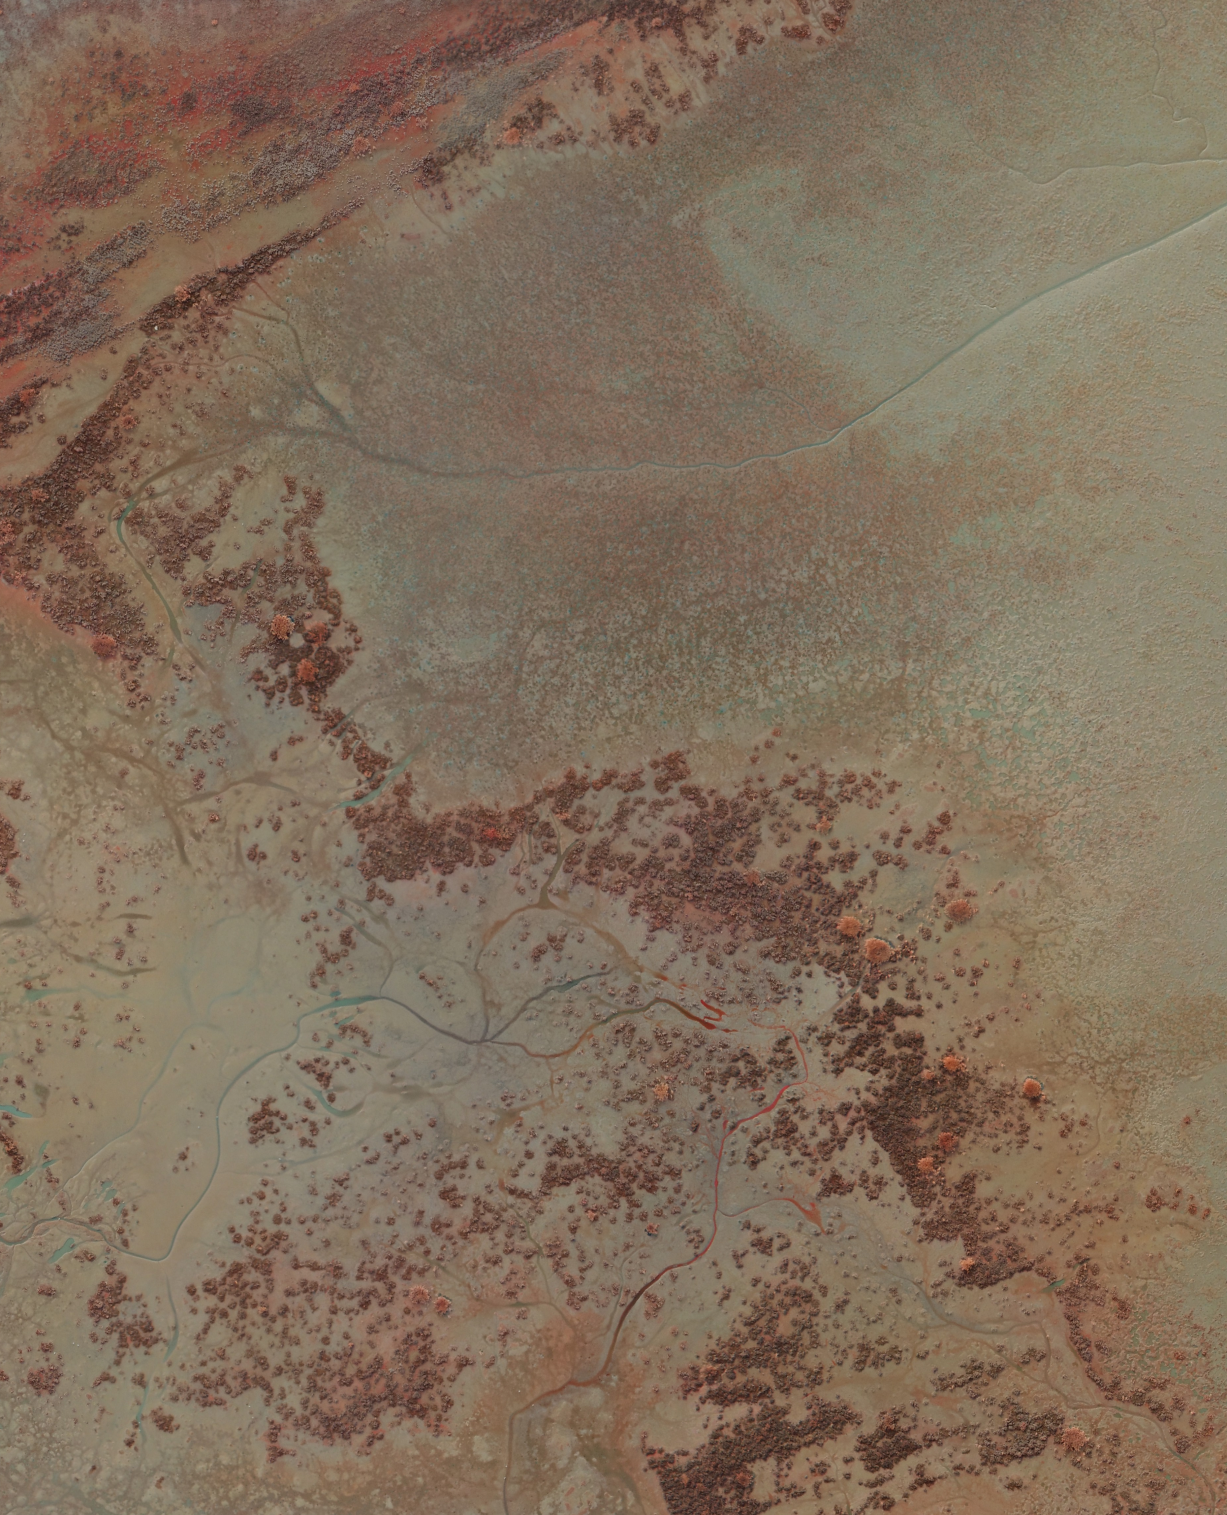 NDVI_highres_cropped.png